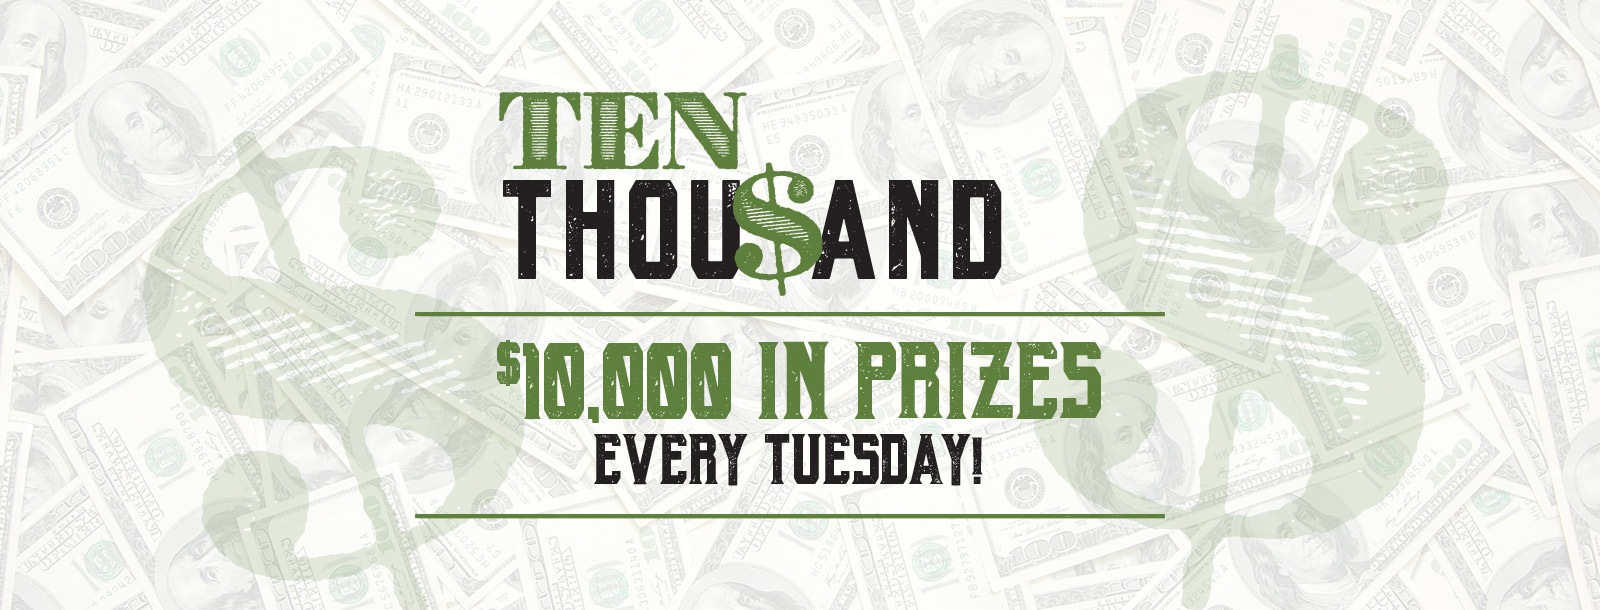 ten thousand every tuesday promotion